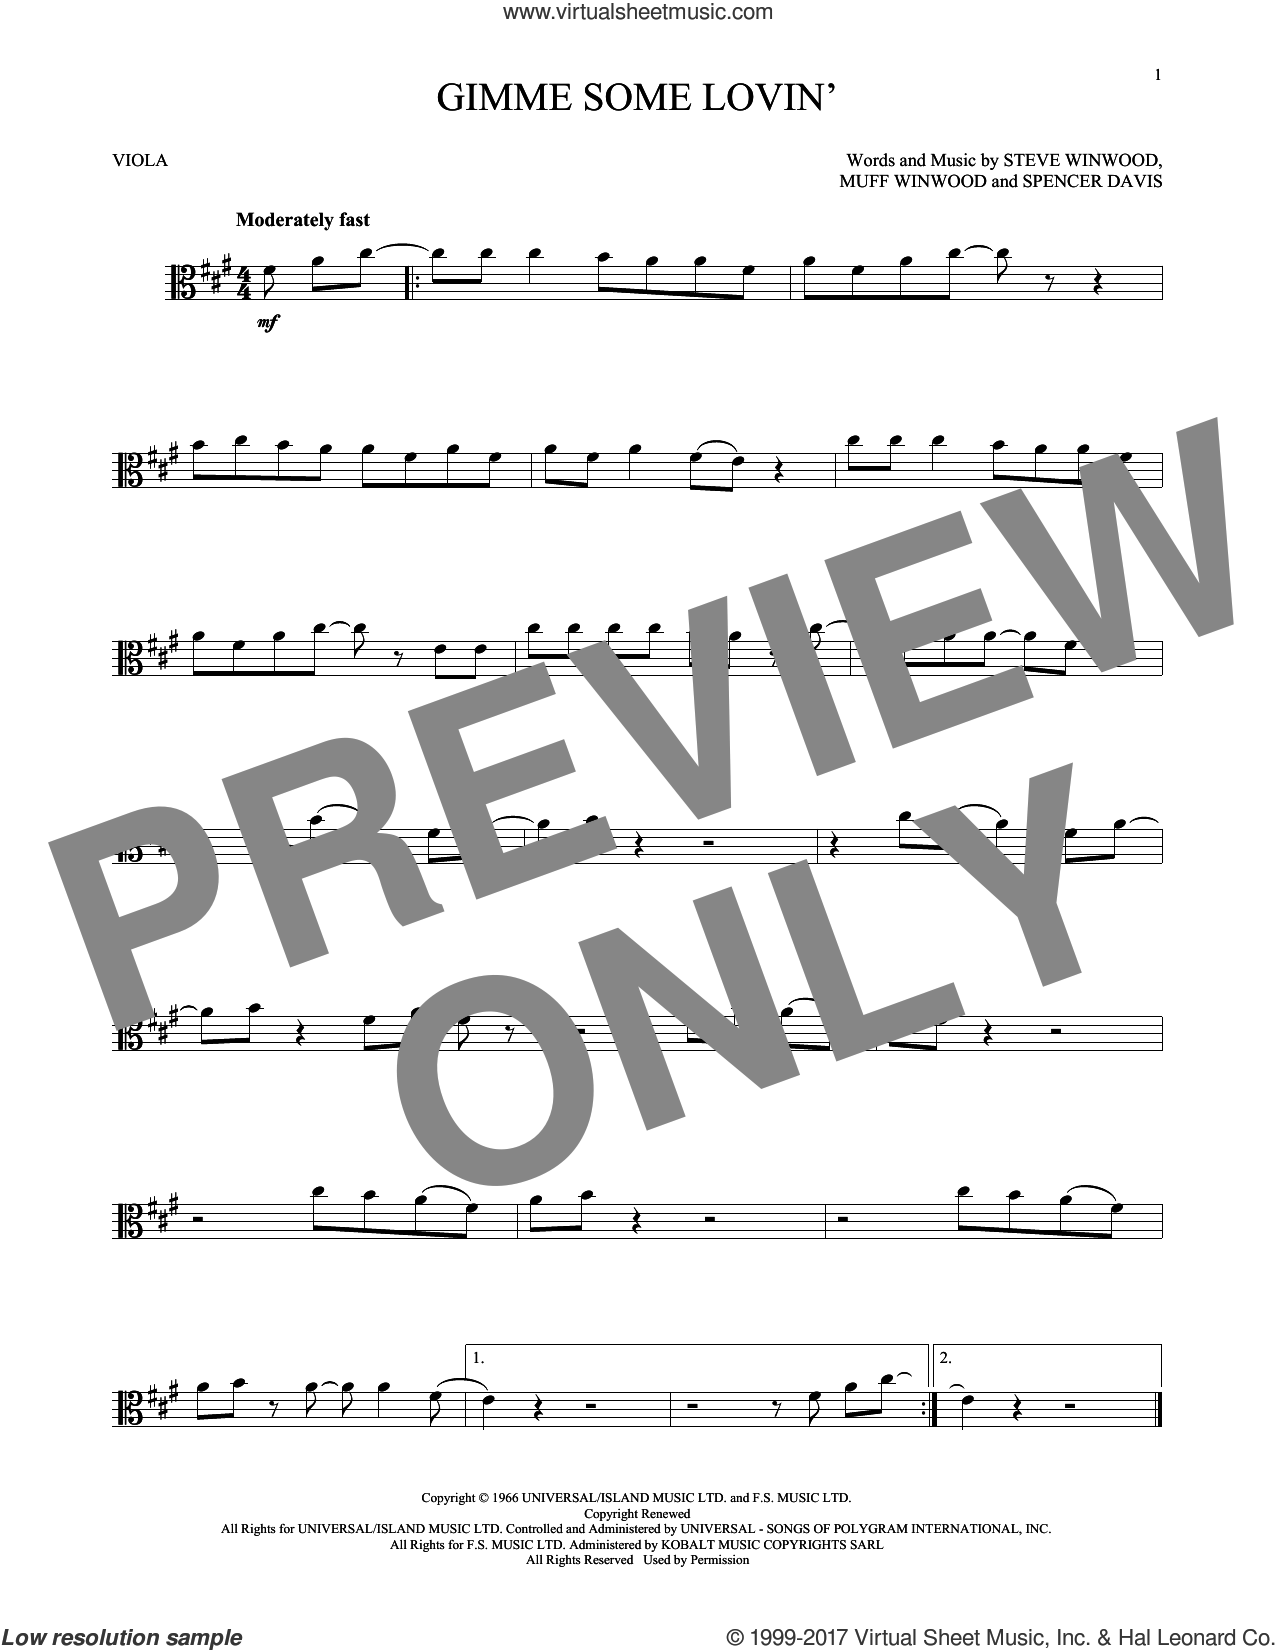 Gimme Some Lovin' sheet music for viola solo by The Spencer Davis Group, Muff Winwood, Spencer Davis and Steve Winwood, intermediate skill level